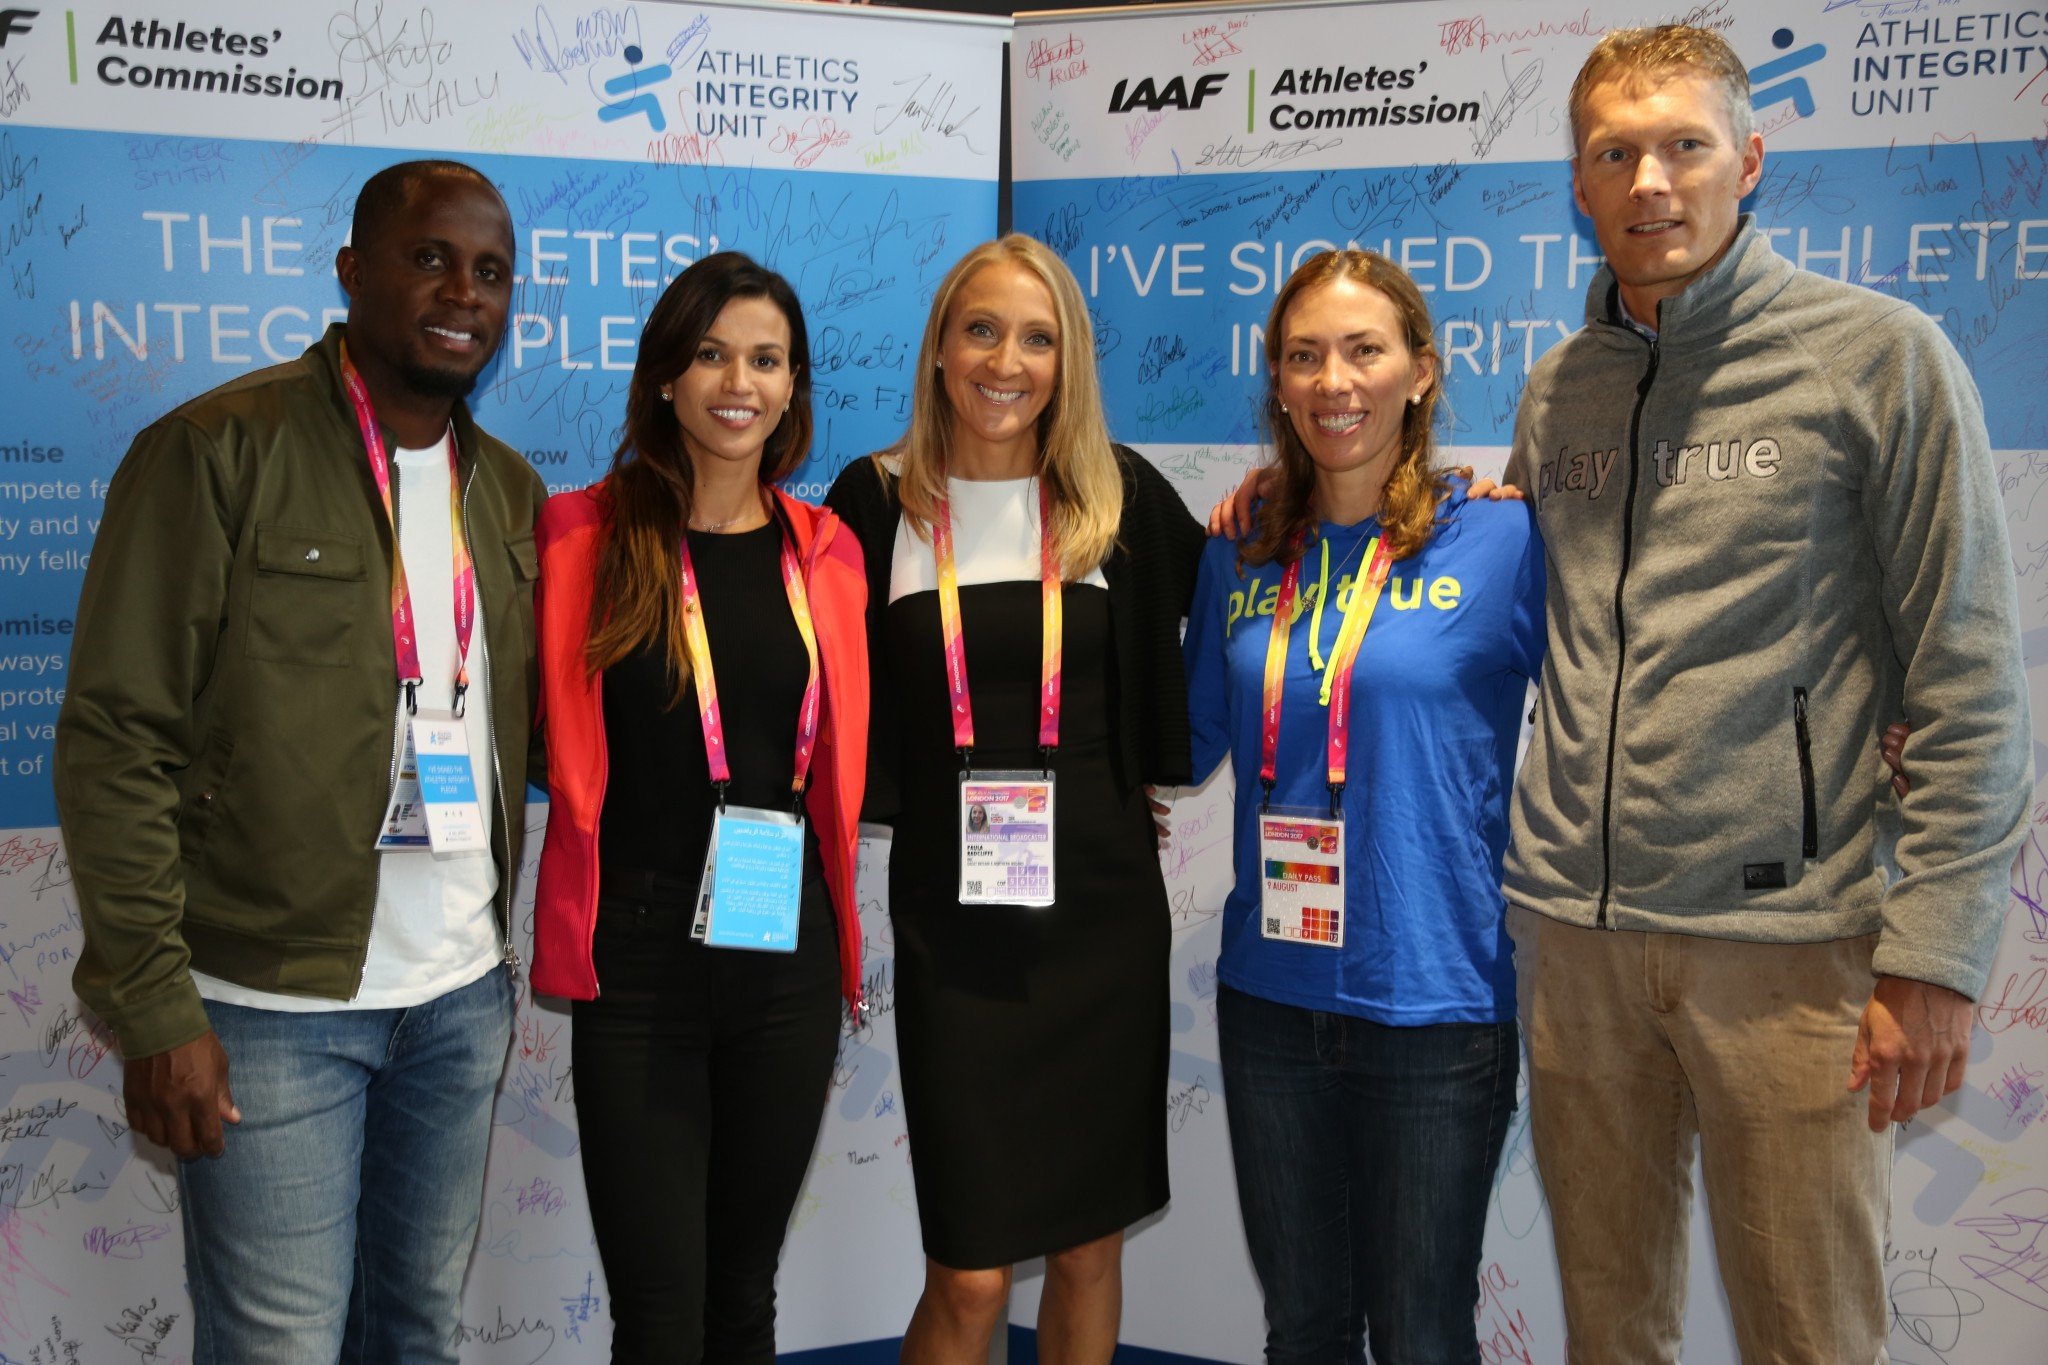 Beckie Scott, second right, met with members of the IAAF Athletes' Commission and Athletes Integrity Unit ©WADA